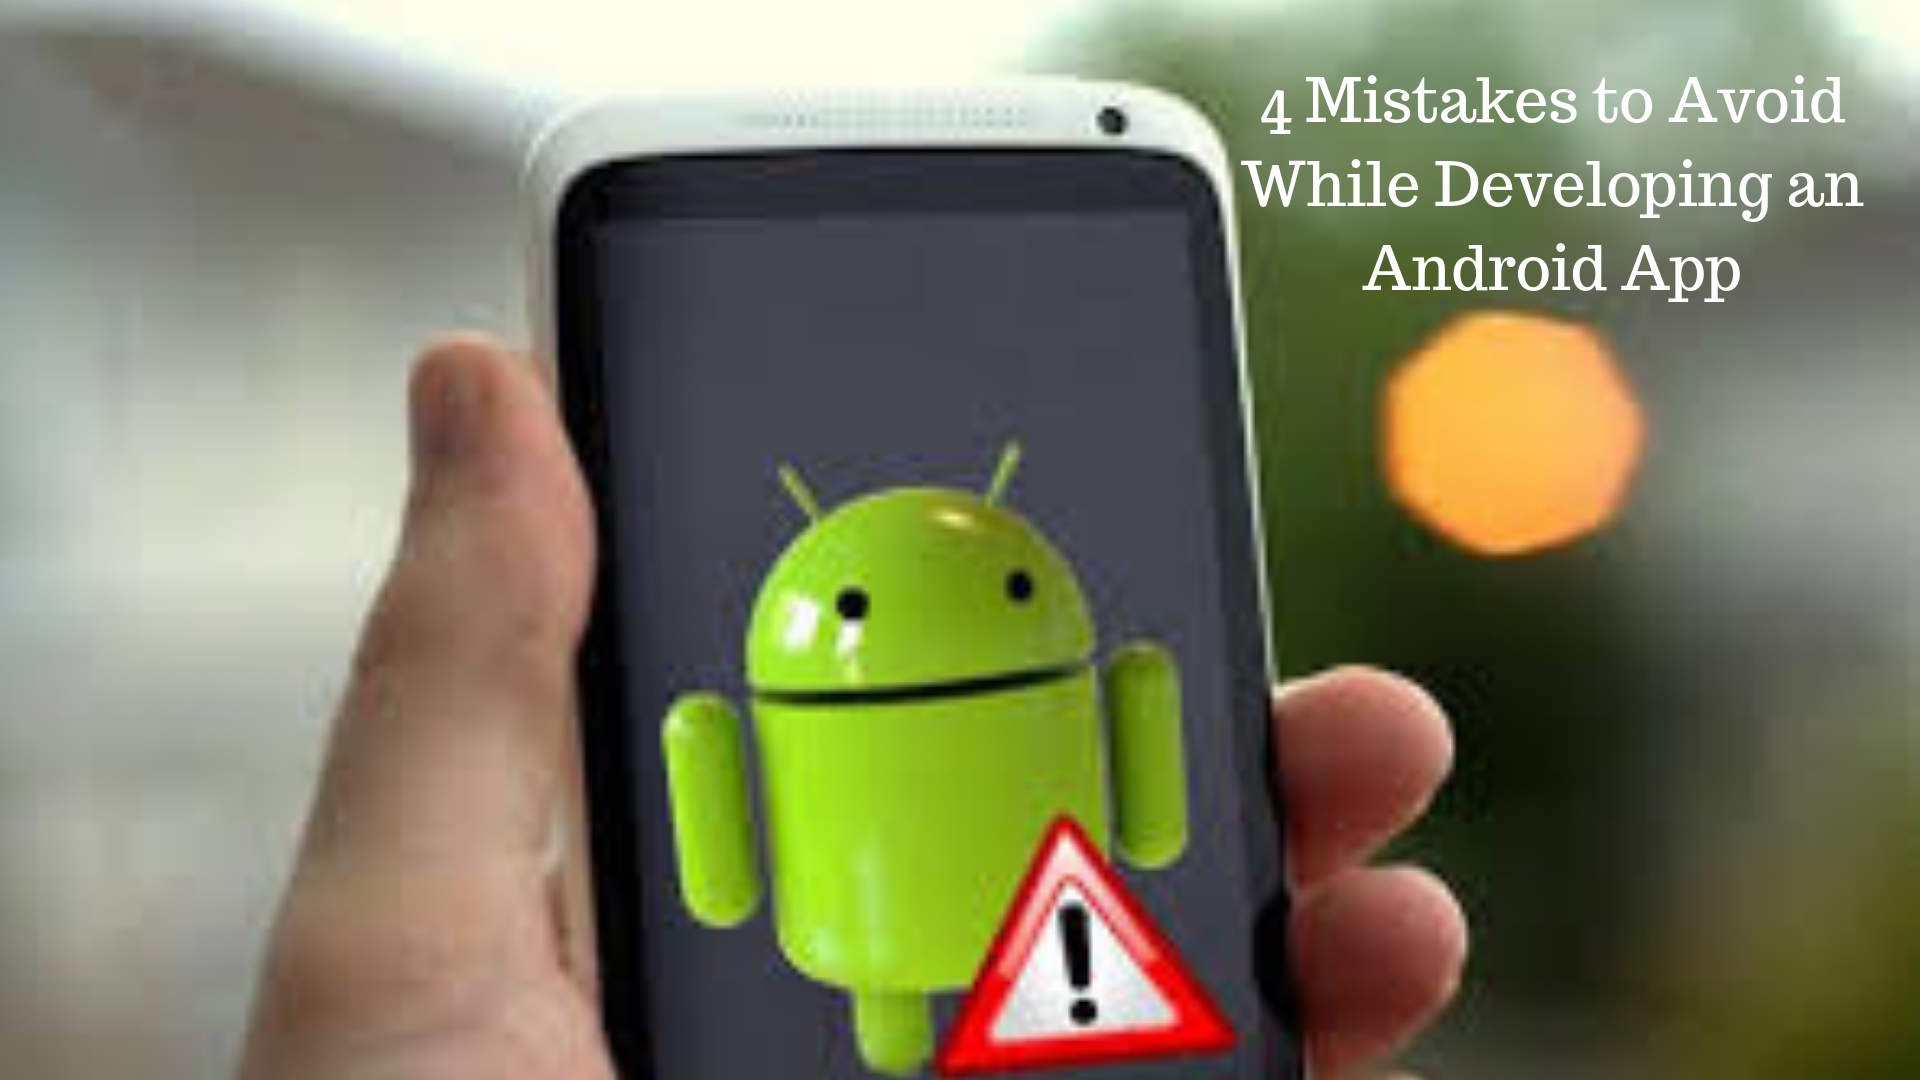 4 Mistakes to Avoid While Developing an Android App